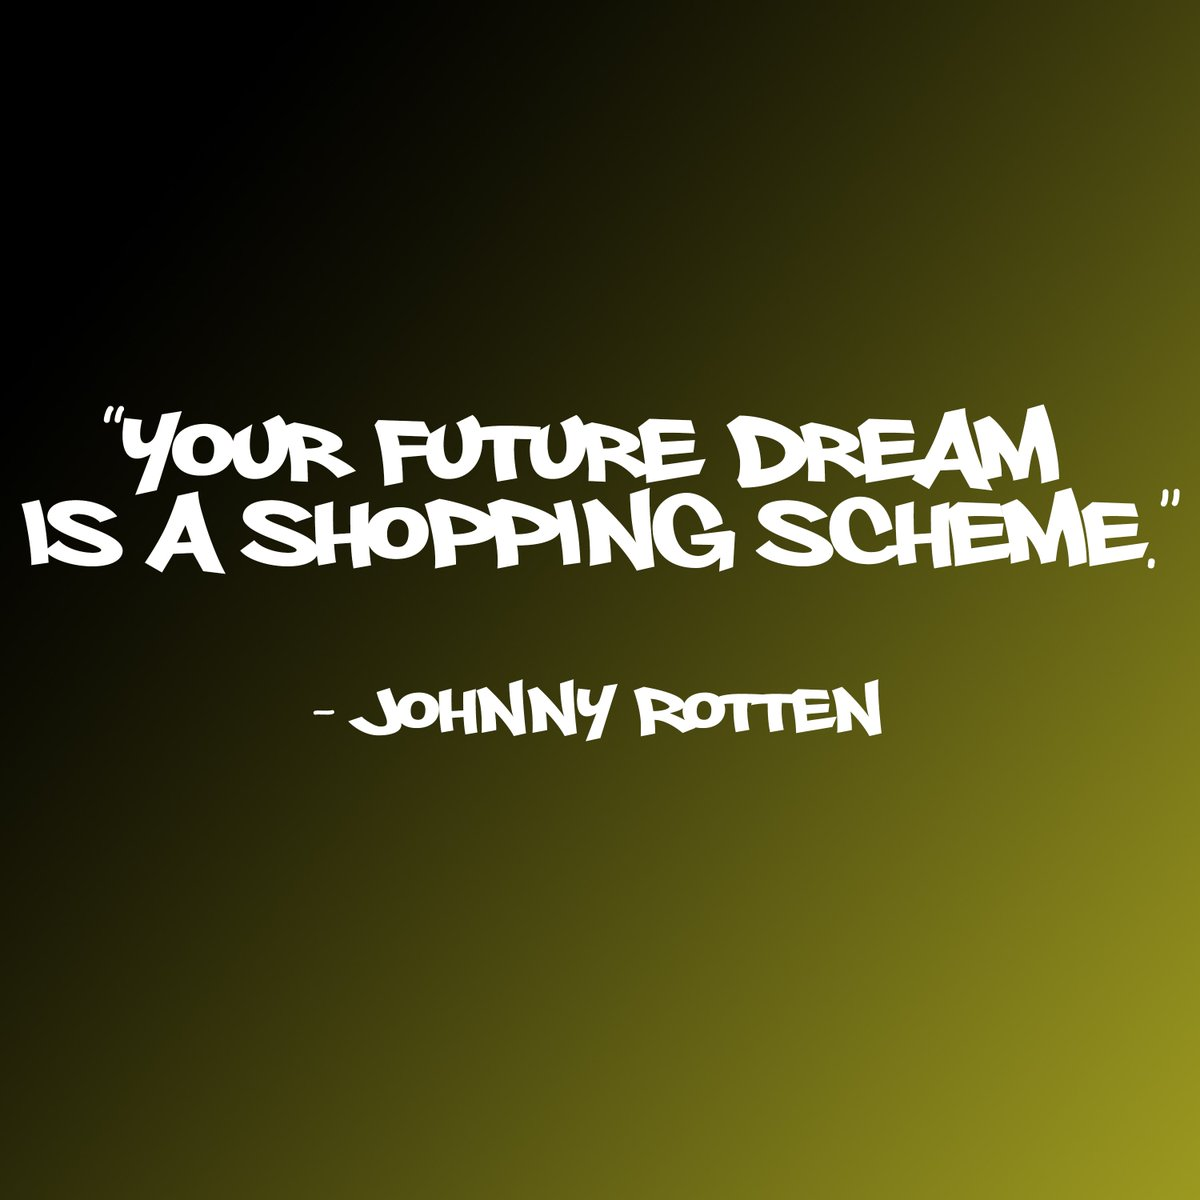 What does the future dream about